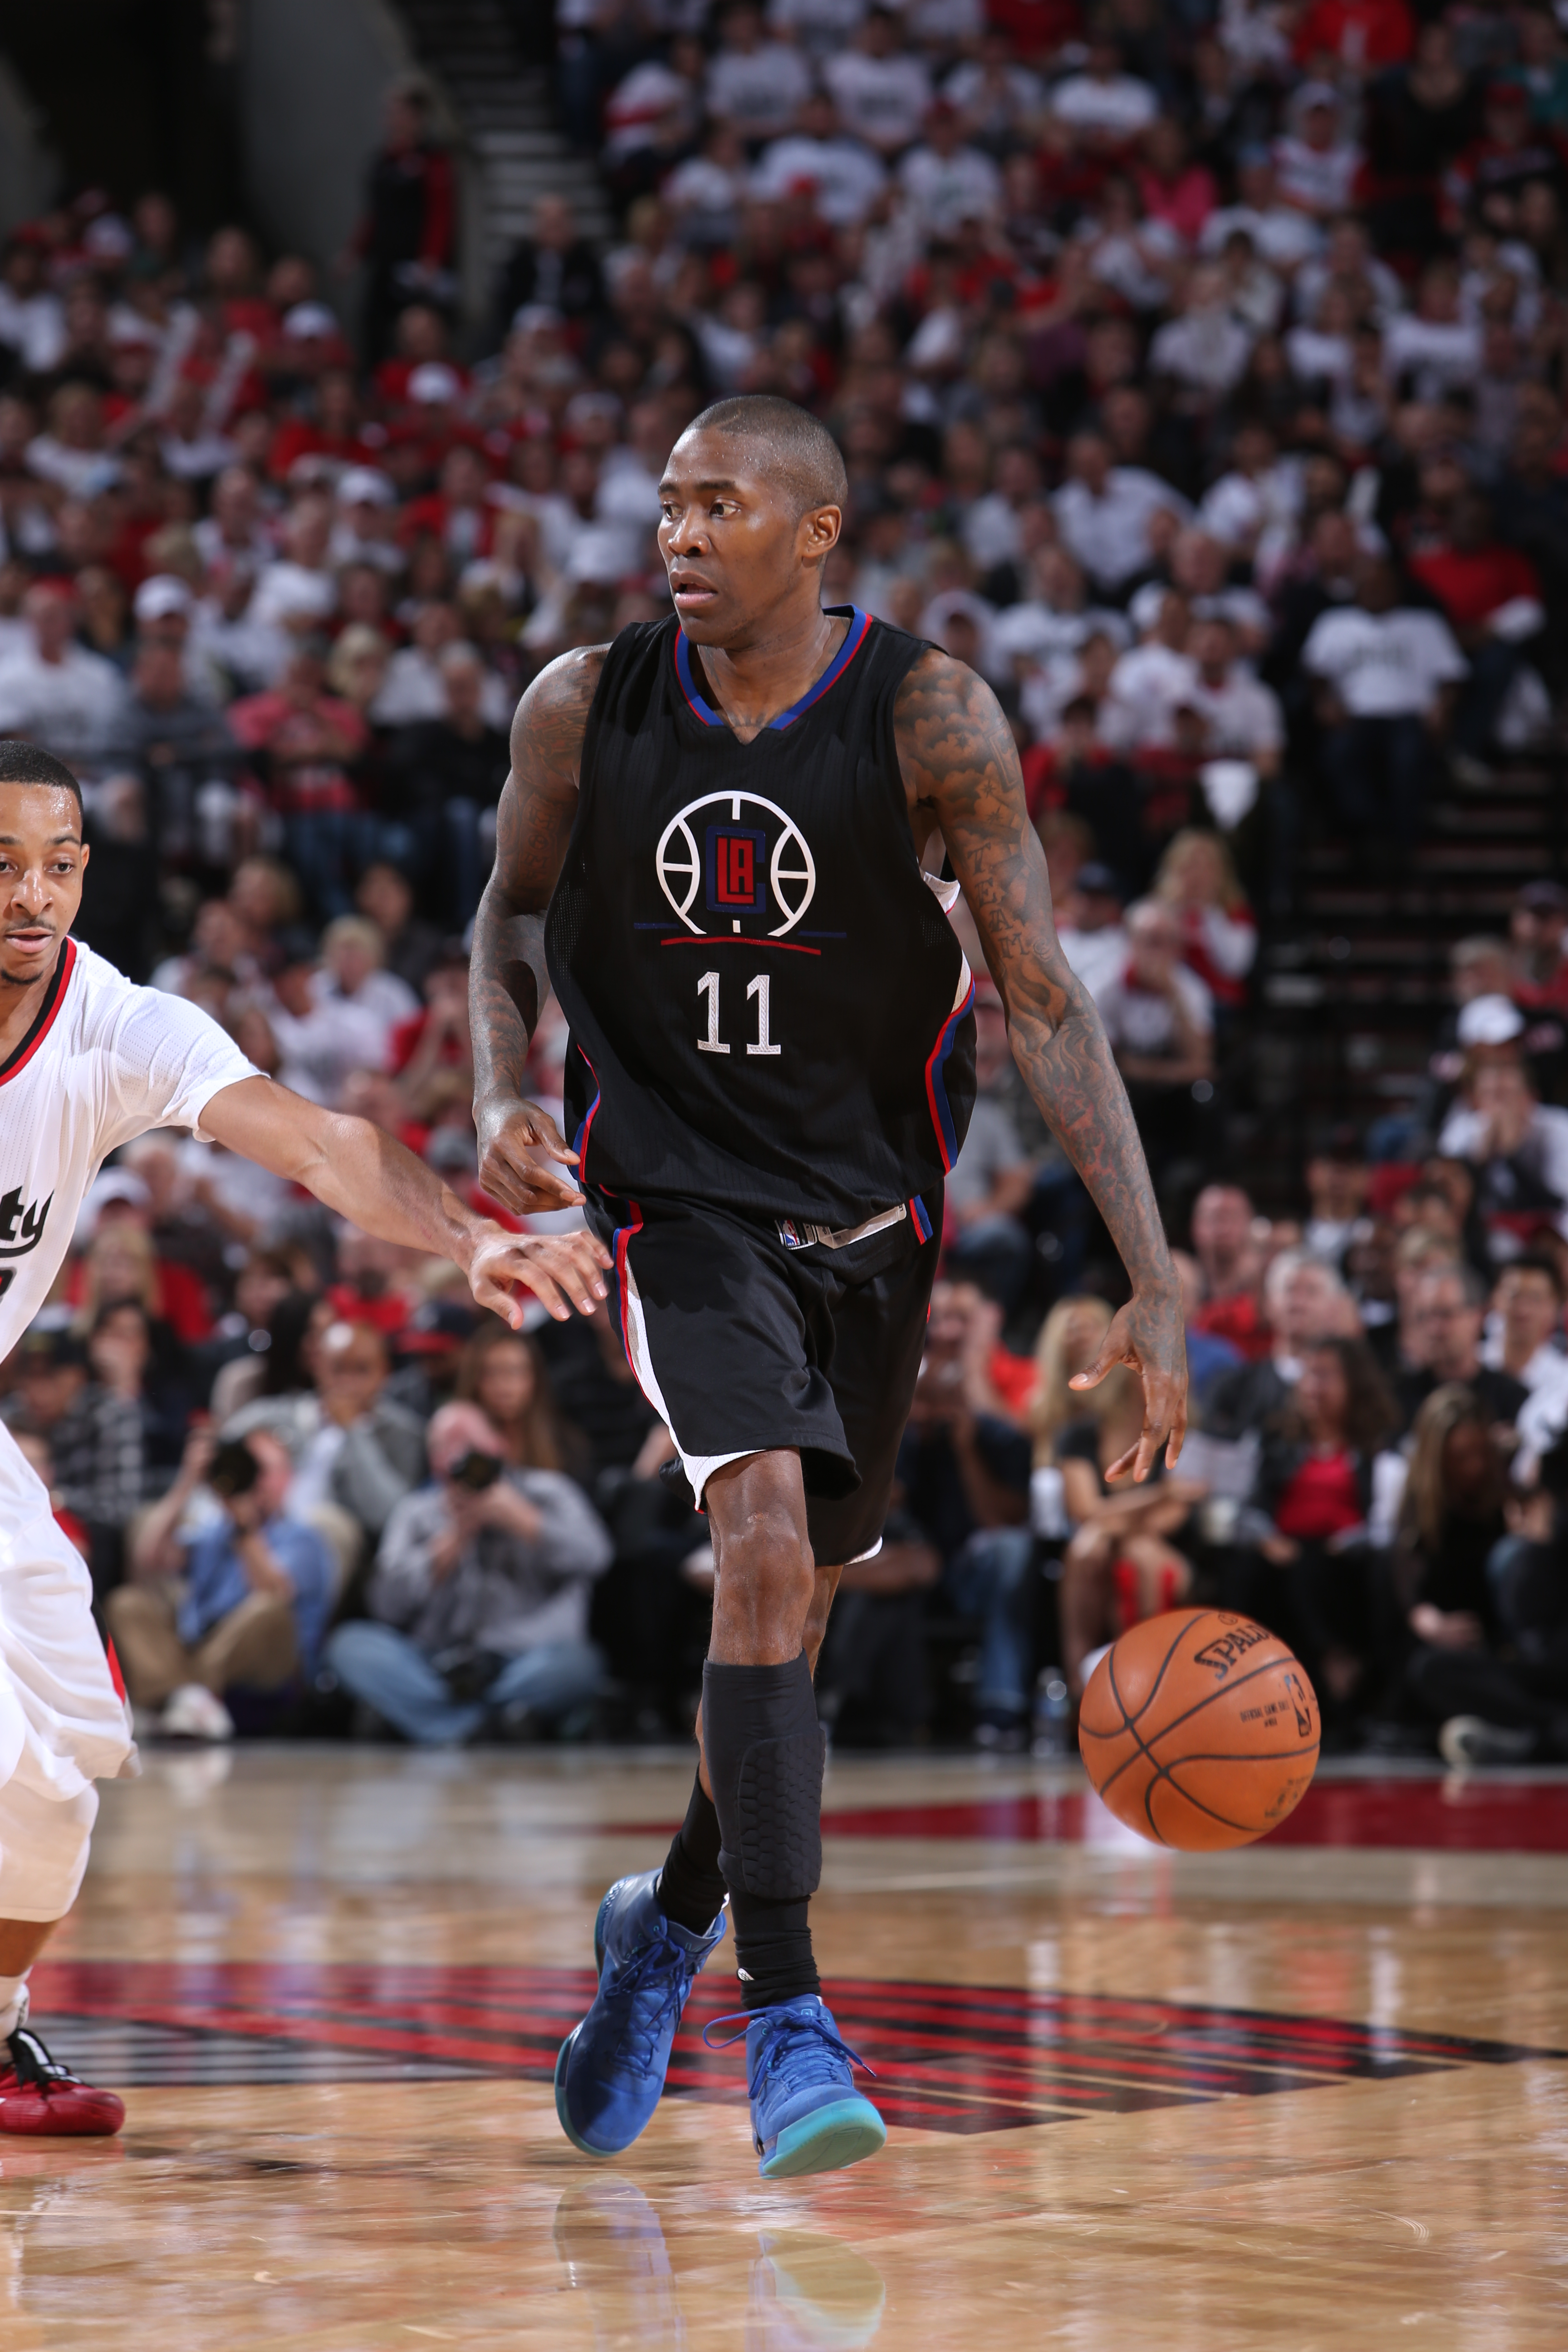 PORTLAND, OR - APRIL 29:  Jamal Crawford #11 of the Los Angeles Clippers handles the ball against the Portland Trail Blazers in Game Six of the Western Conference Quarterfinals during the 2016 NBA Playoffs on April 29, 2016 at the Moda Center Arena in Por